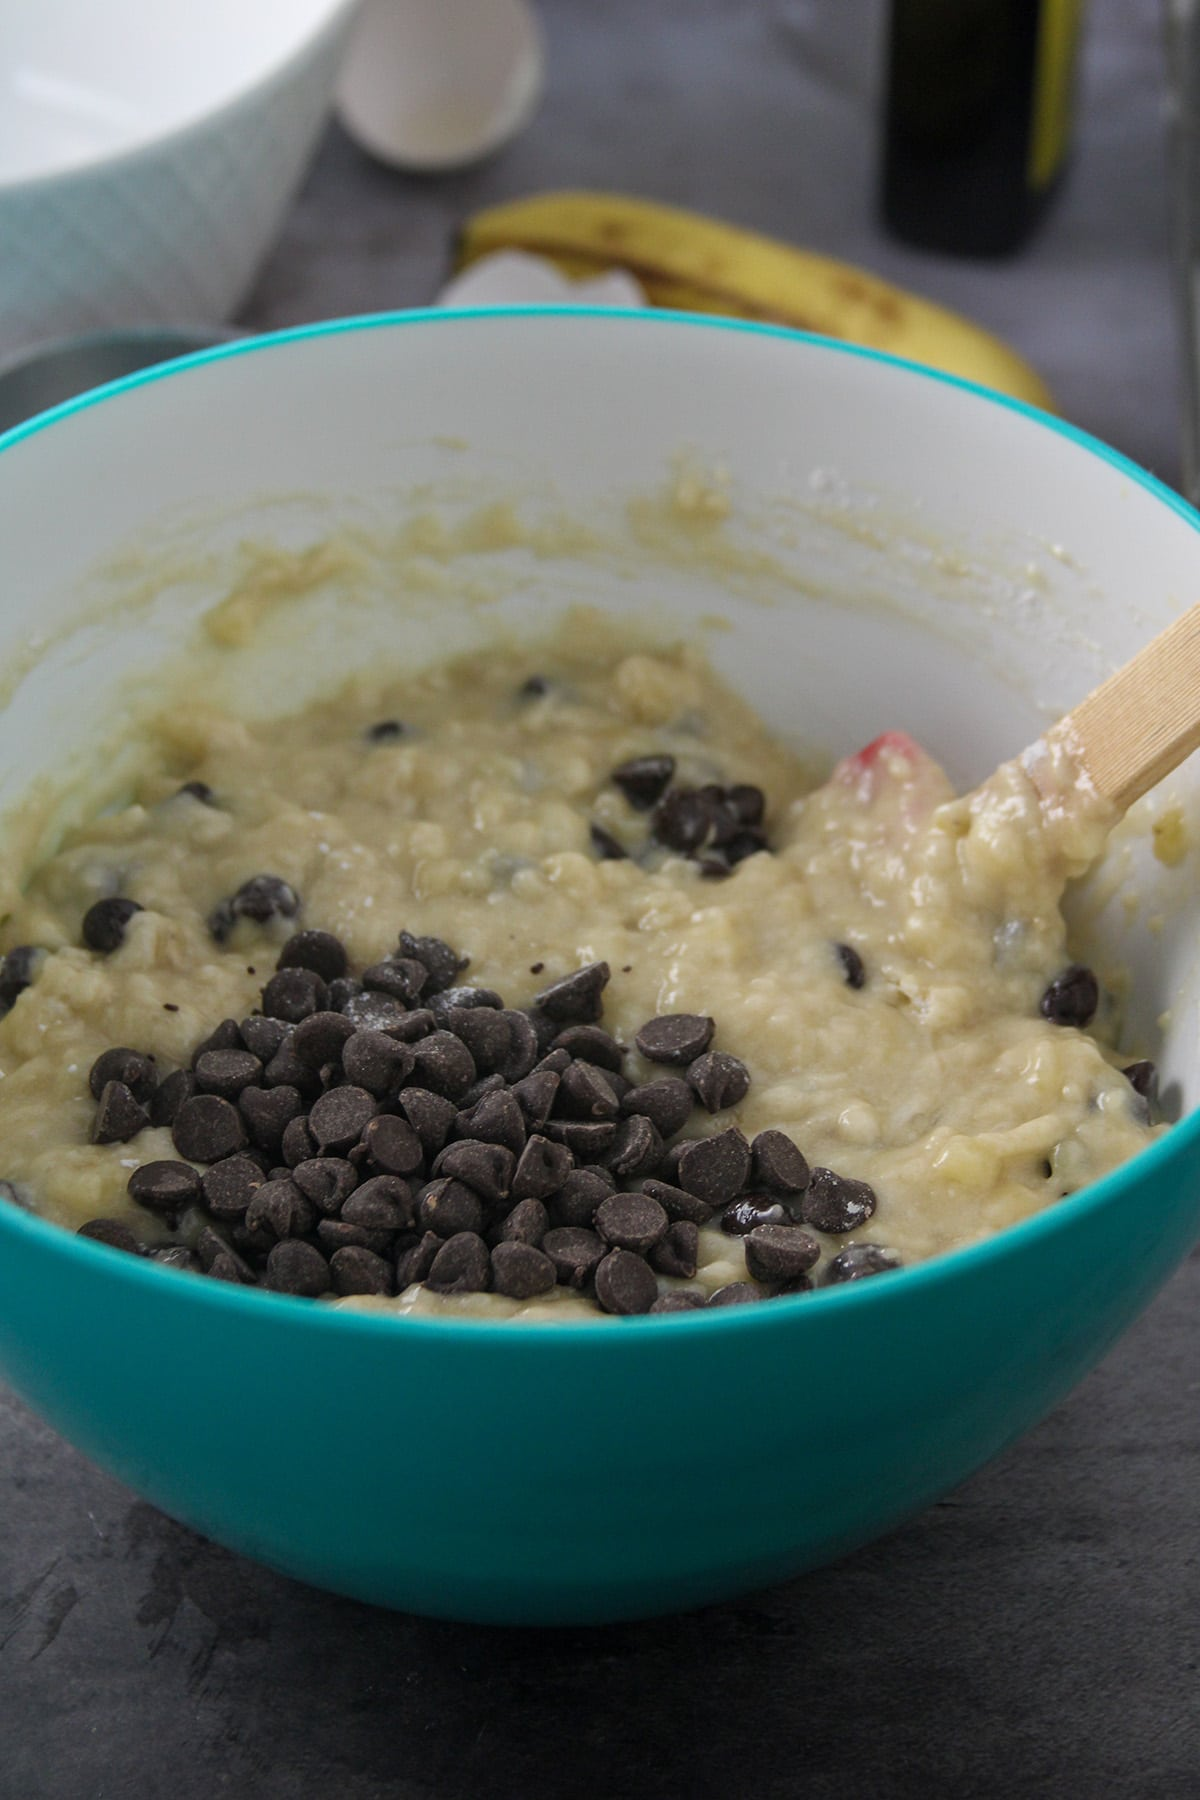 Folding in the chocolate chips into the banana bread batter.